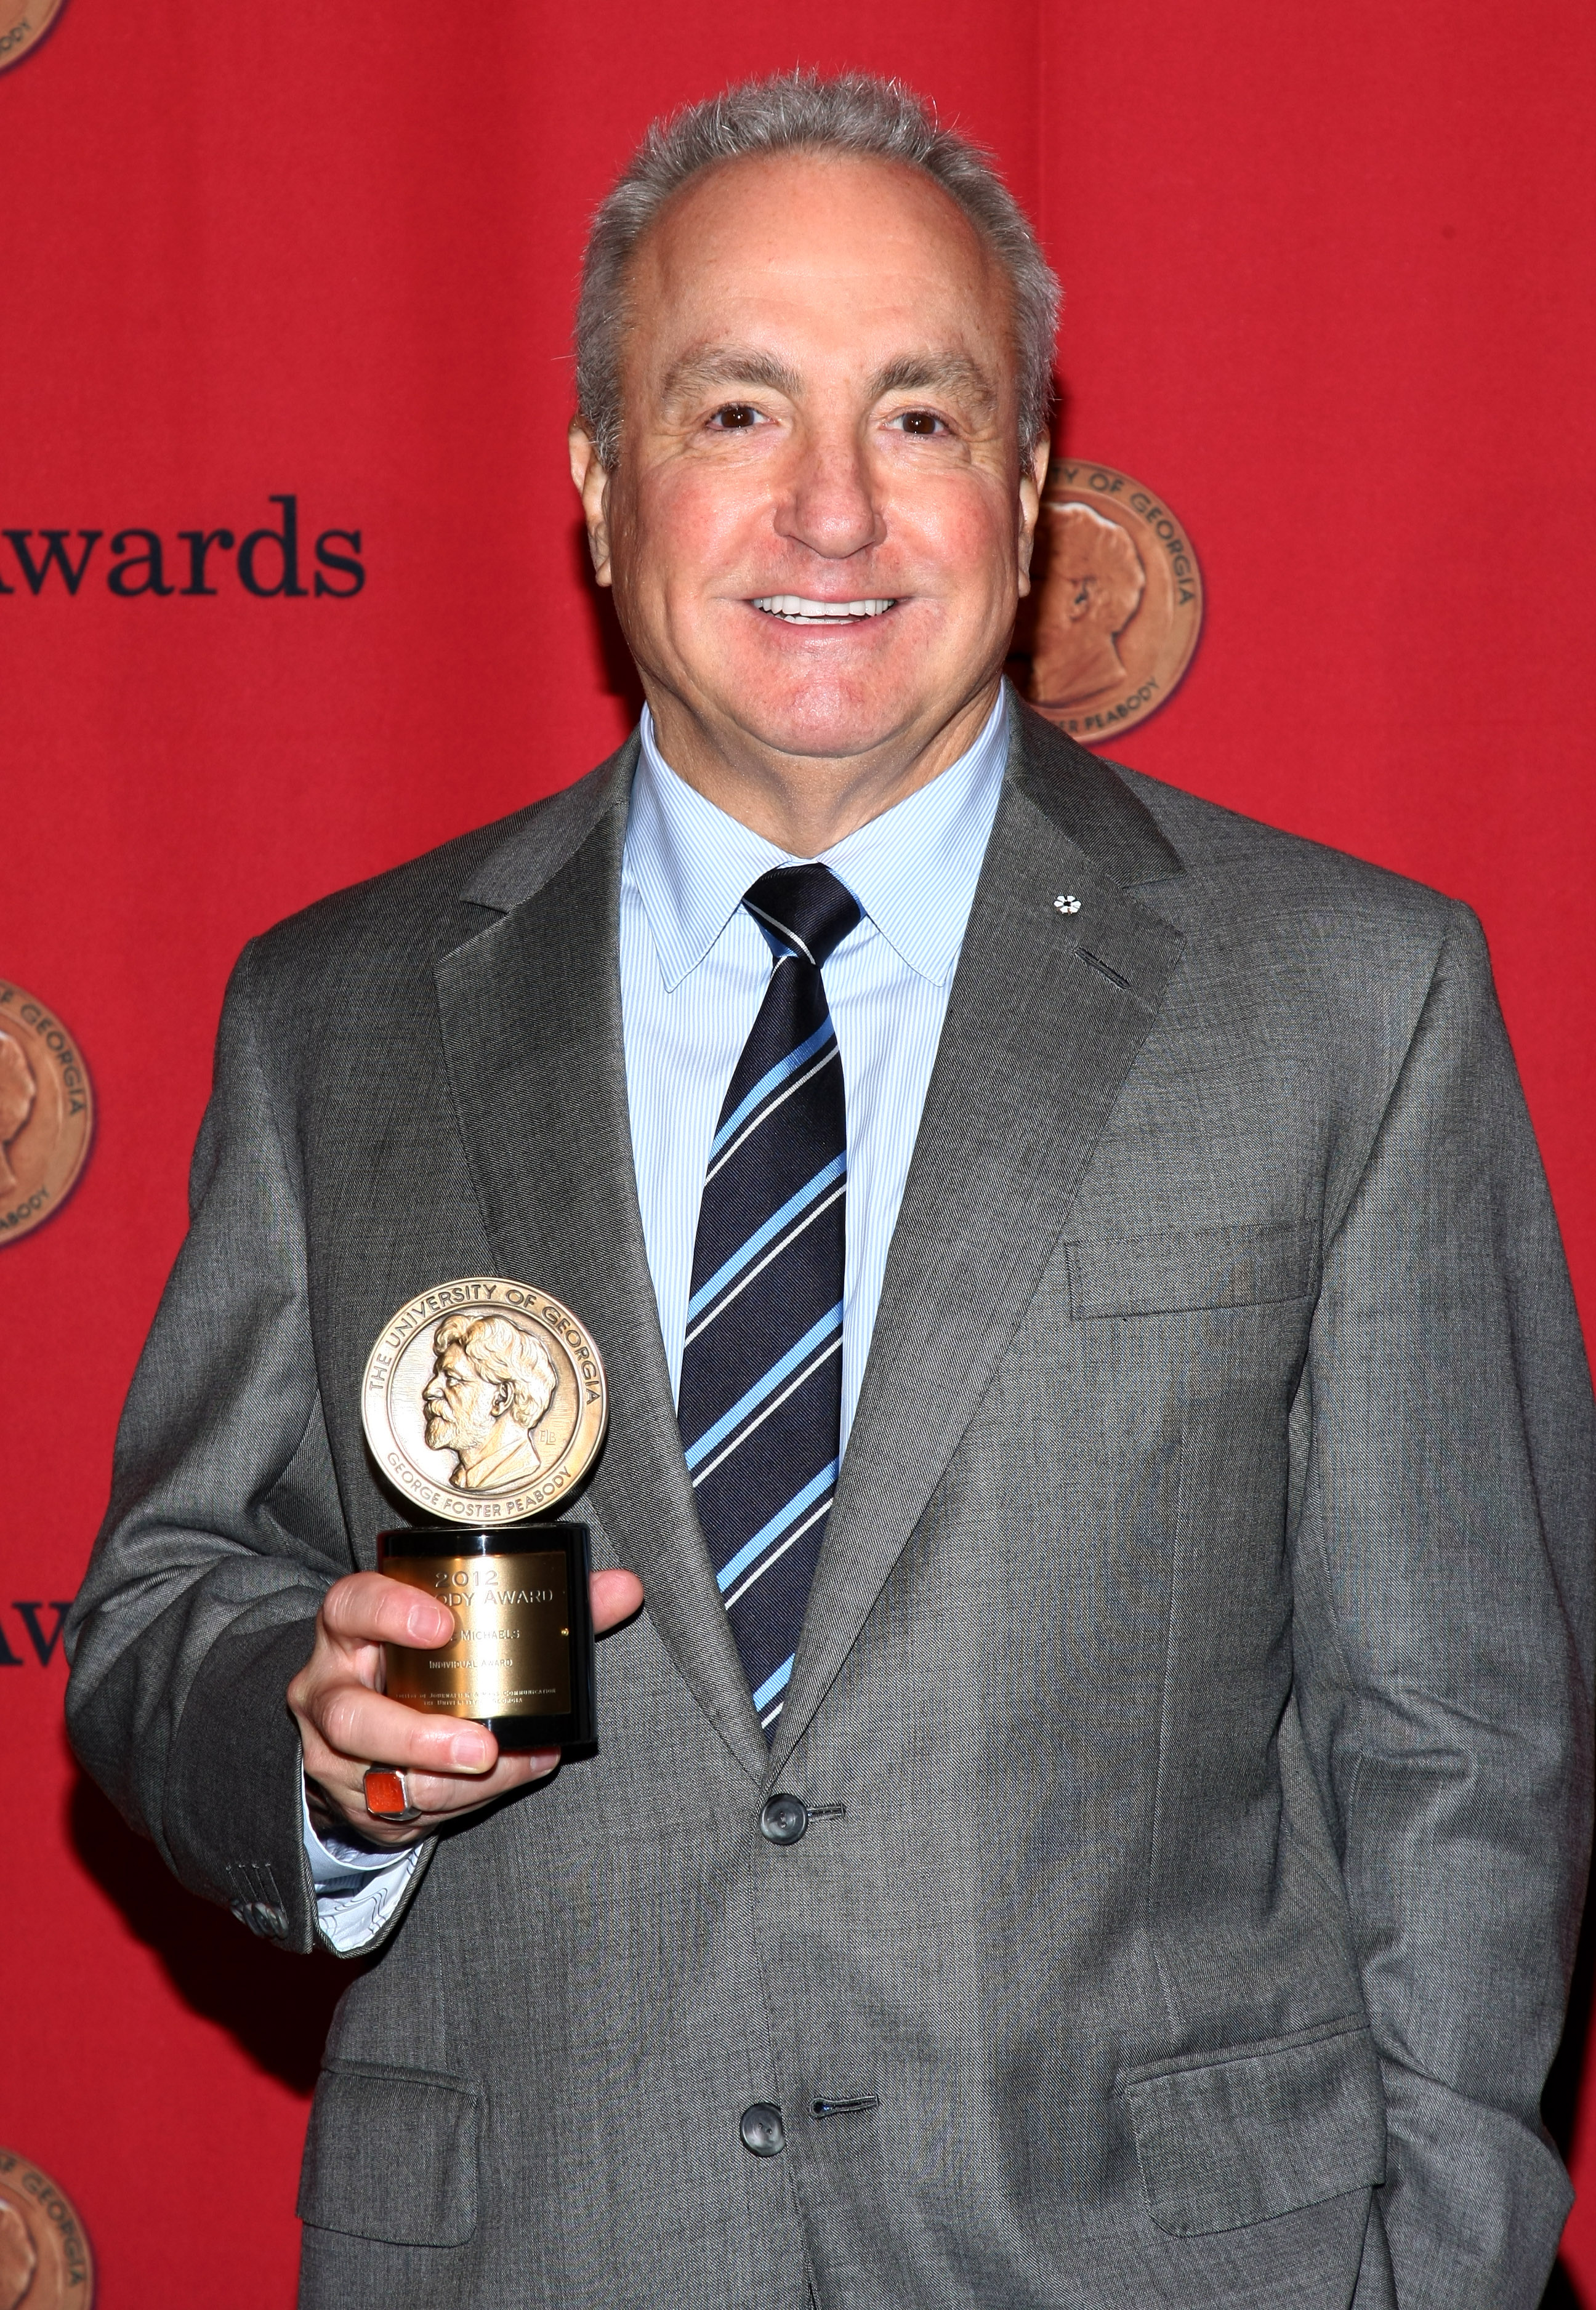 The 73-year old son of father Henry Abraham Lipowitz and mother Florence Becker Lorne Michaels in 2018 photo. Lorne Michaels earned a  million dollar salary - leaving the net worth at 500 million in 2018